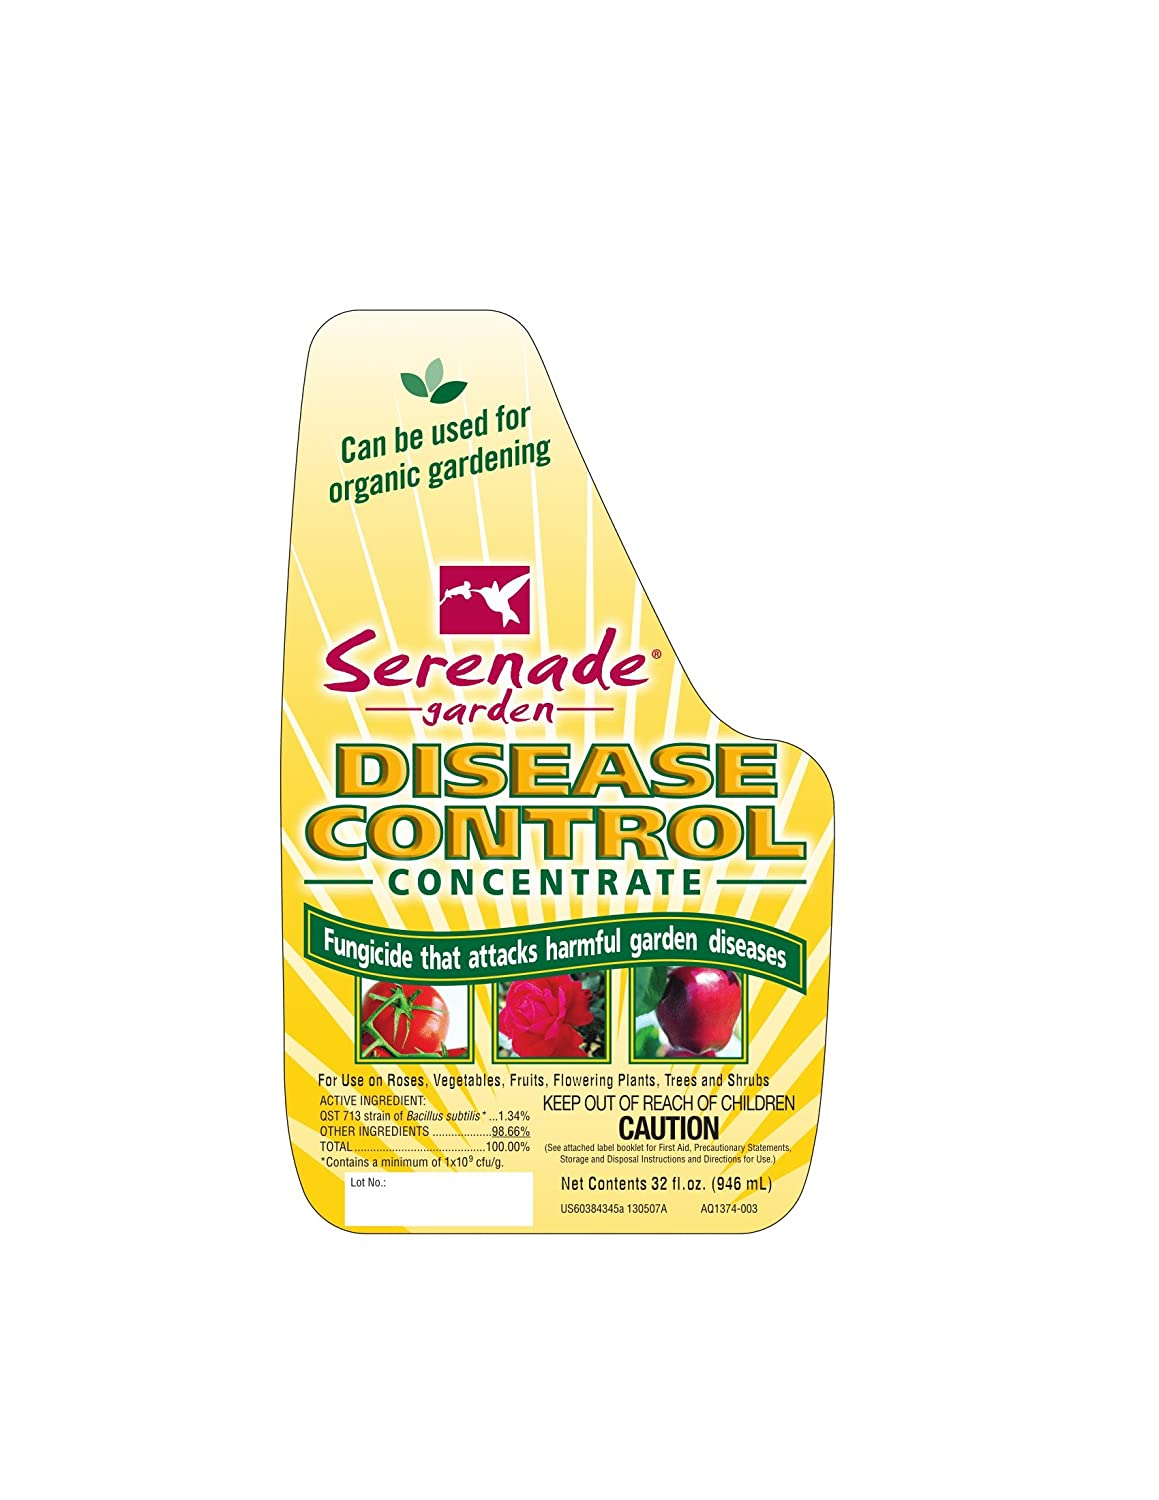 Serenade Garden Disease Control Organic Fungicide, Ready-to-Spray, 28 Oz